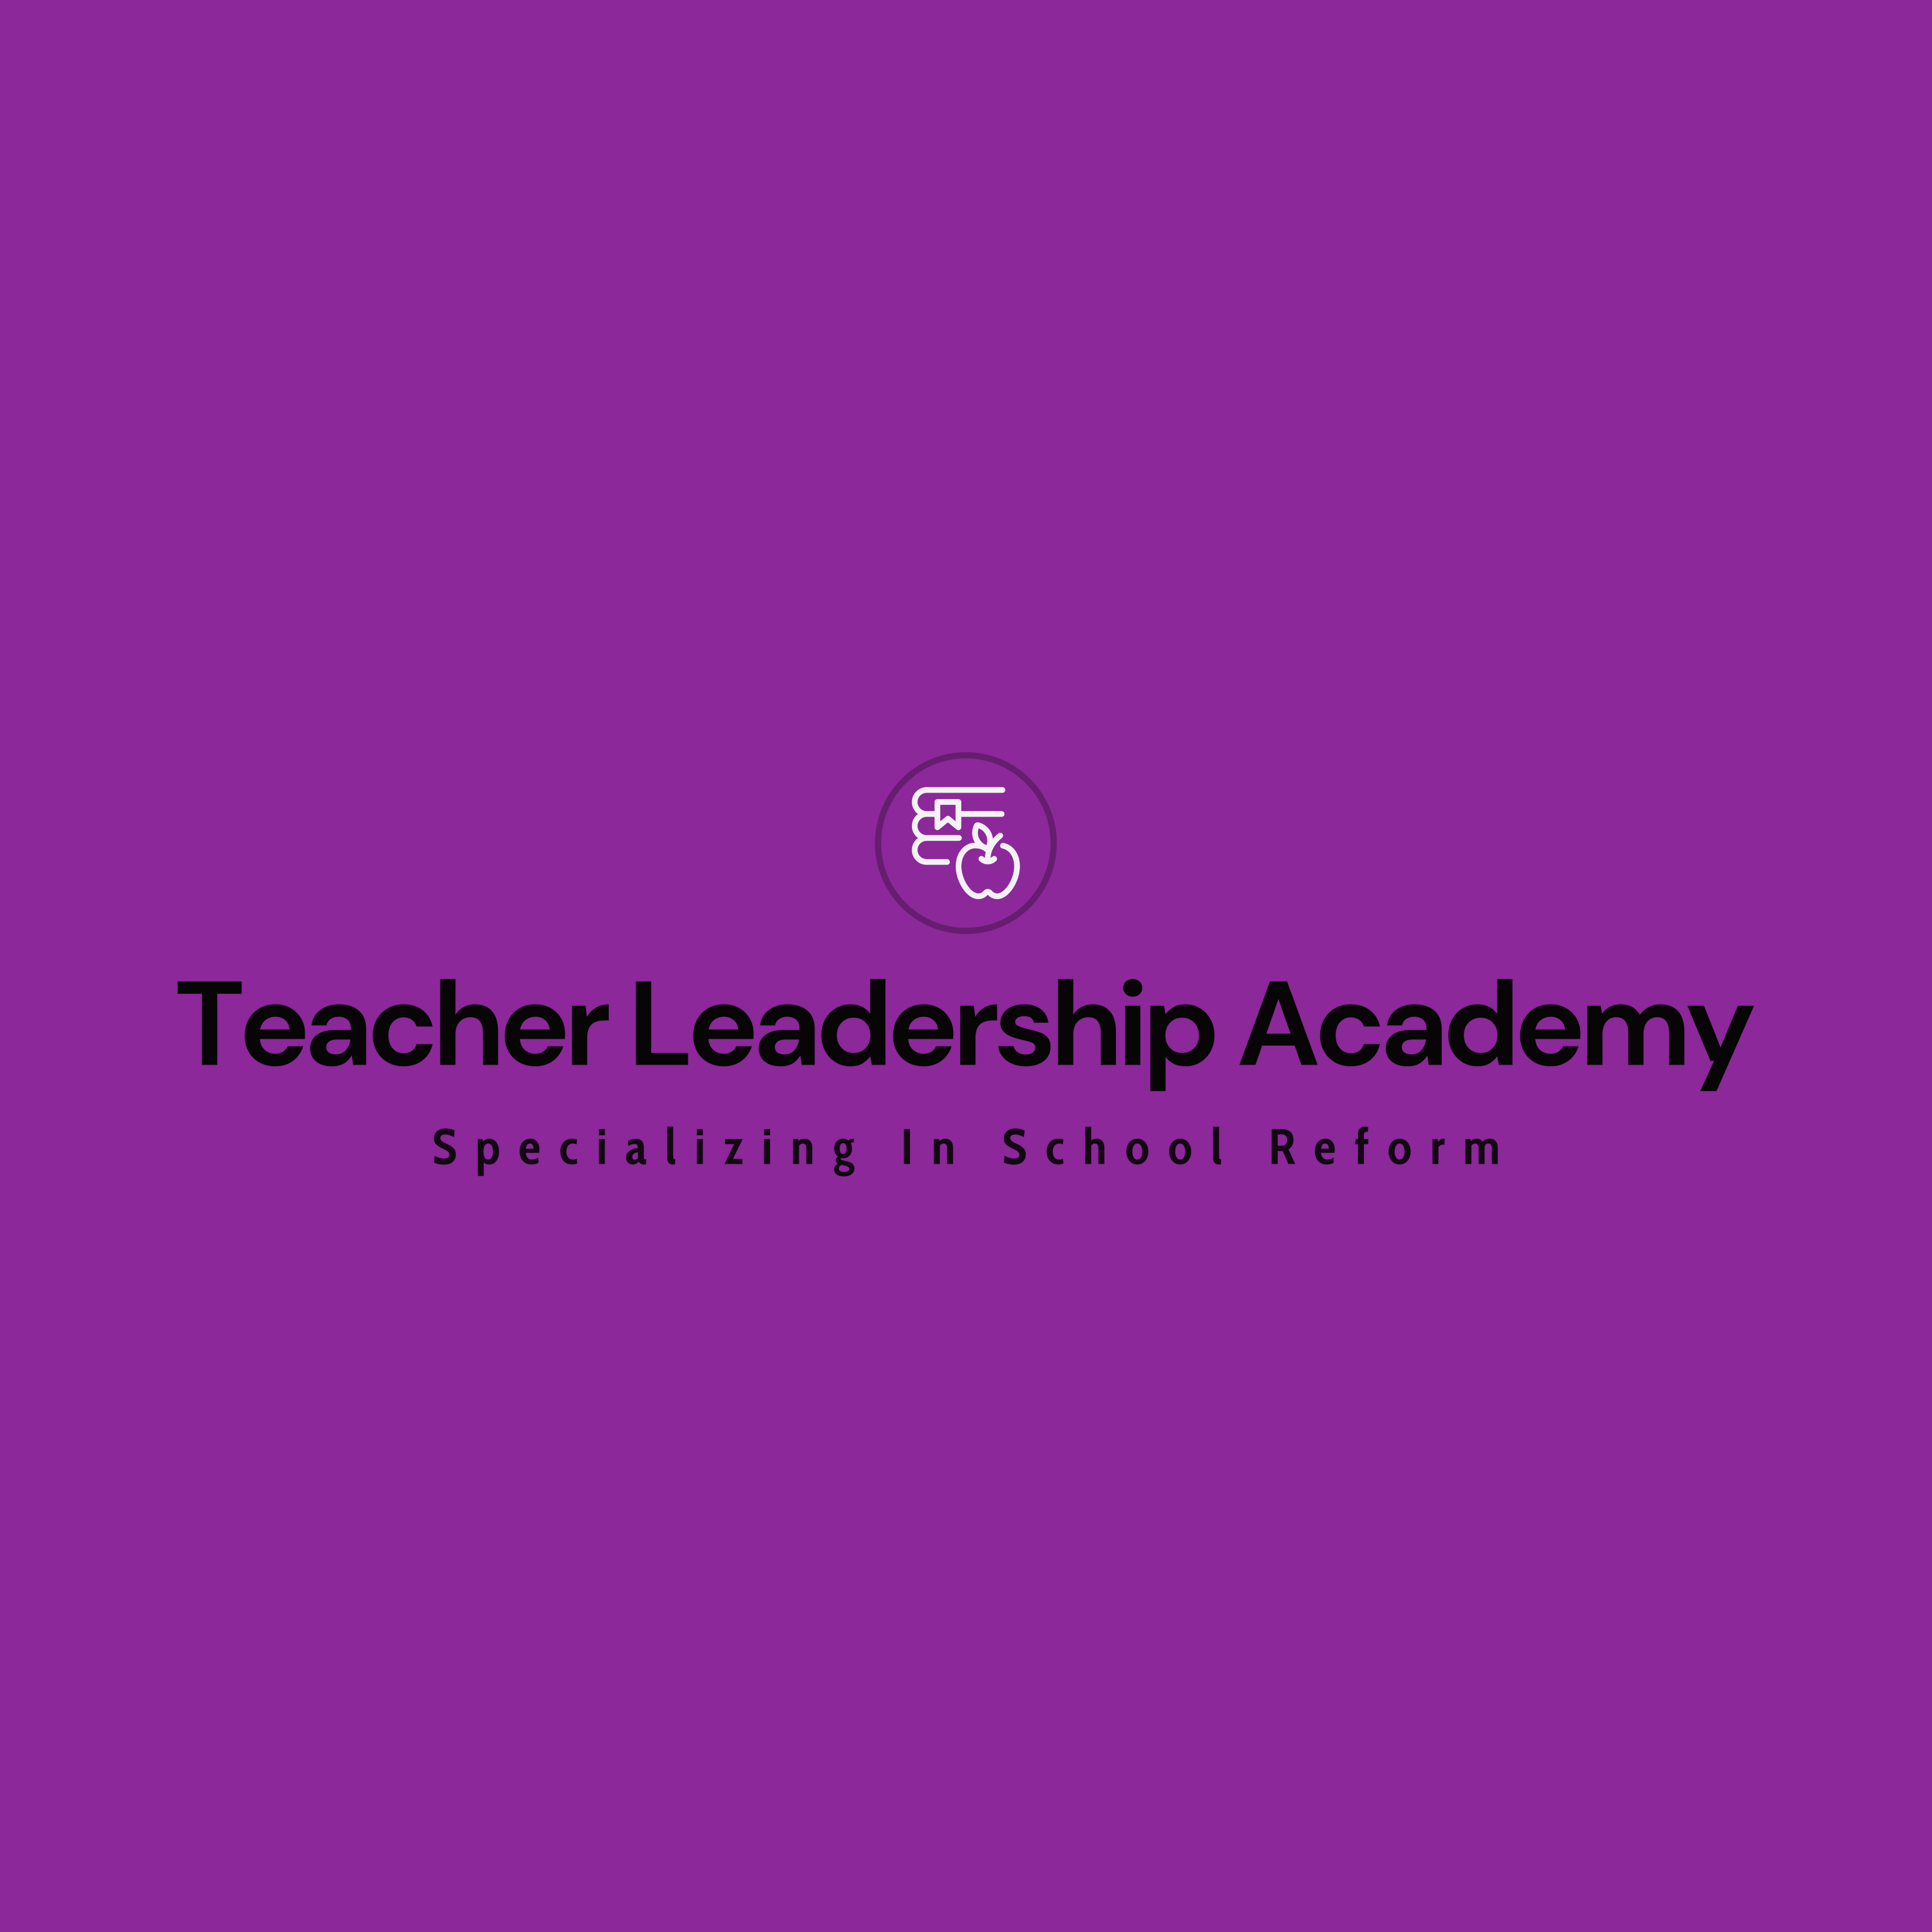 Teacher Leadership Academy